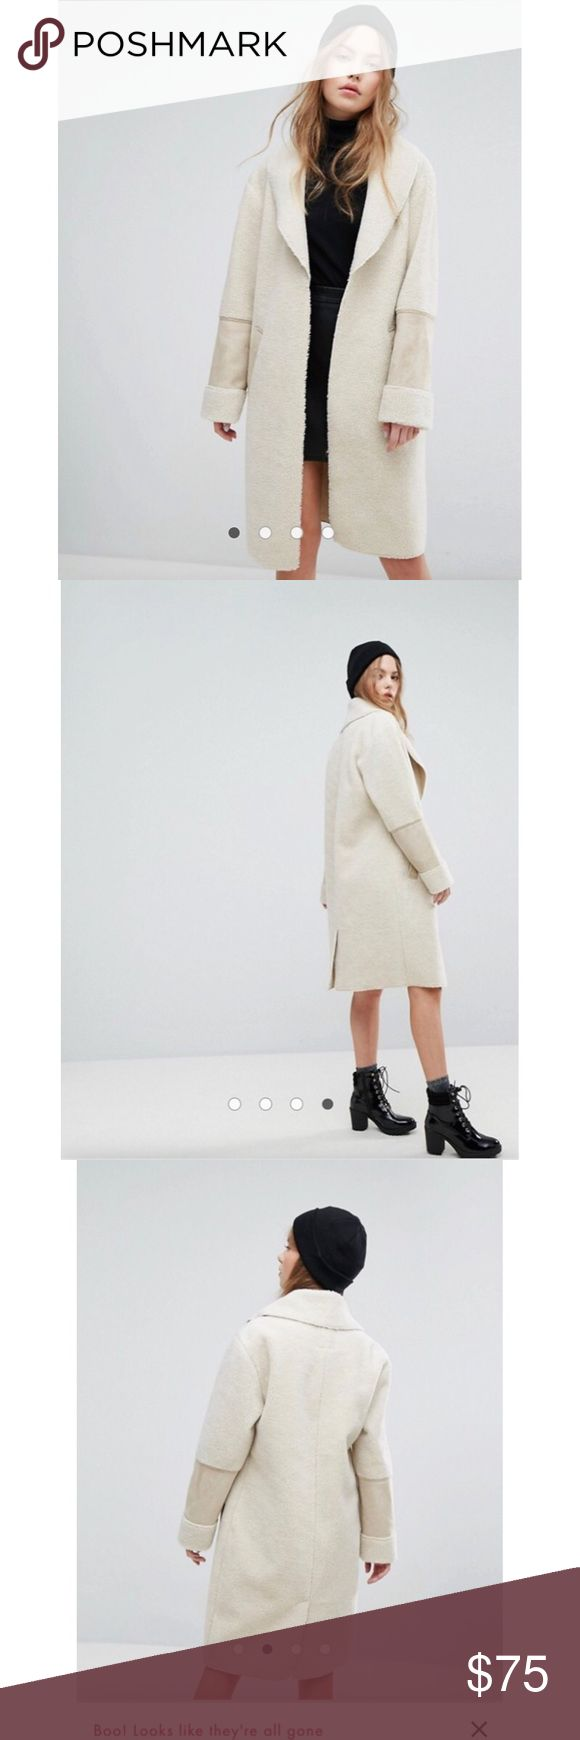 Asos New Look Faux Shearling Teddy Coat No tags but brand new! Adorable and warm! Elevates a casual outfit and adds detail to any look. I ordered it in a medium and small, took the tags off of both in a fury and now I can't return it but has never been worn and is totally sold out. New Look Jackets & Coats